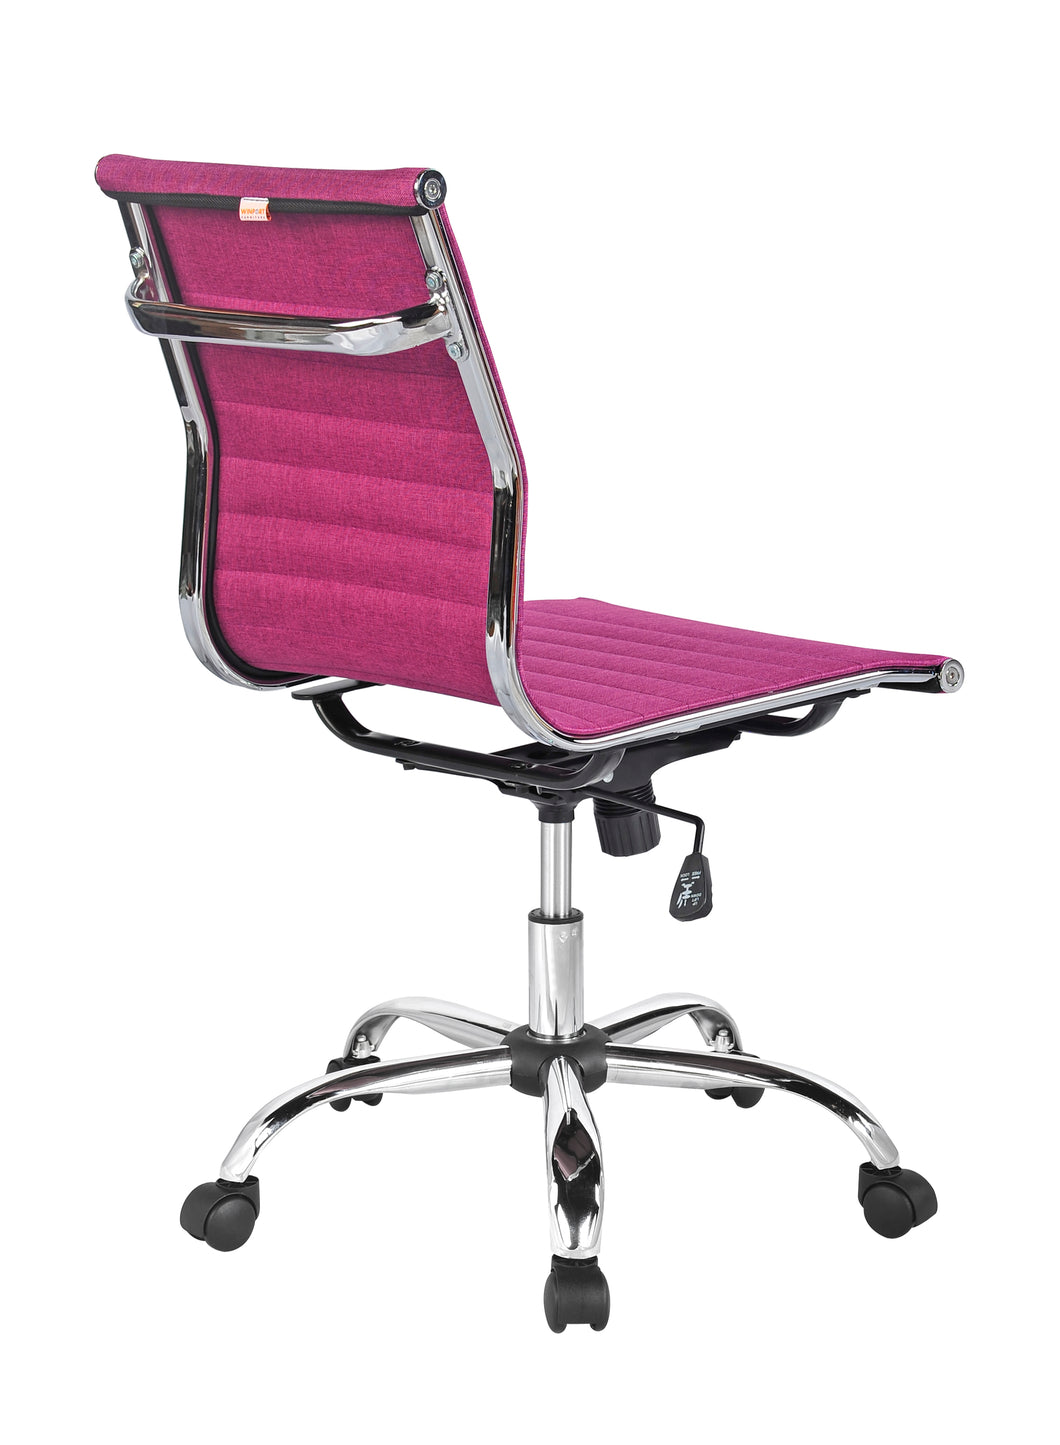 Magnificent Winport Mid Back Fabric Armless Office Desk Chair Tb 5052F Cjindustries Chair Design For Home Cjindustriesco